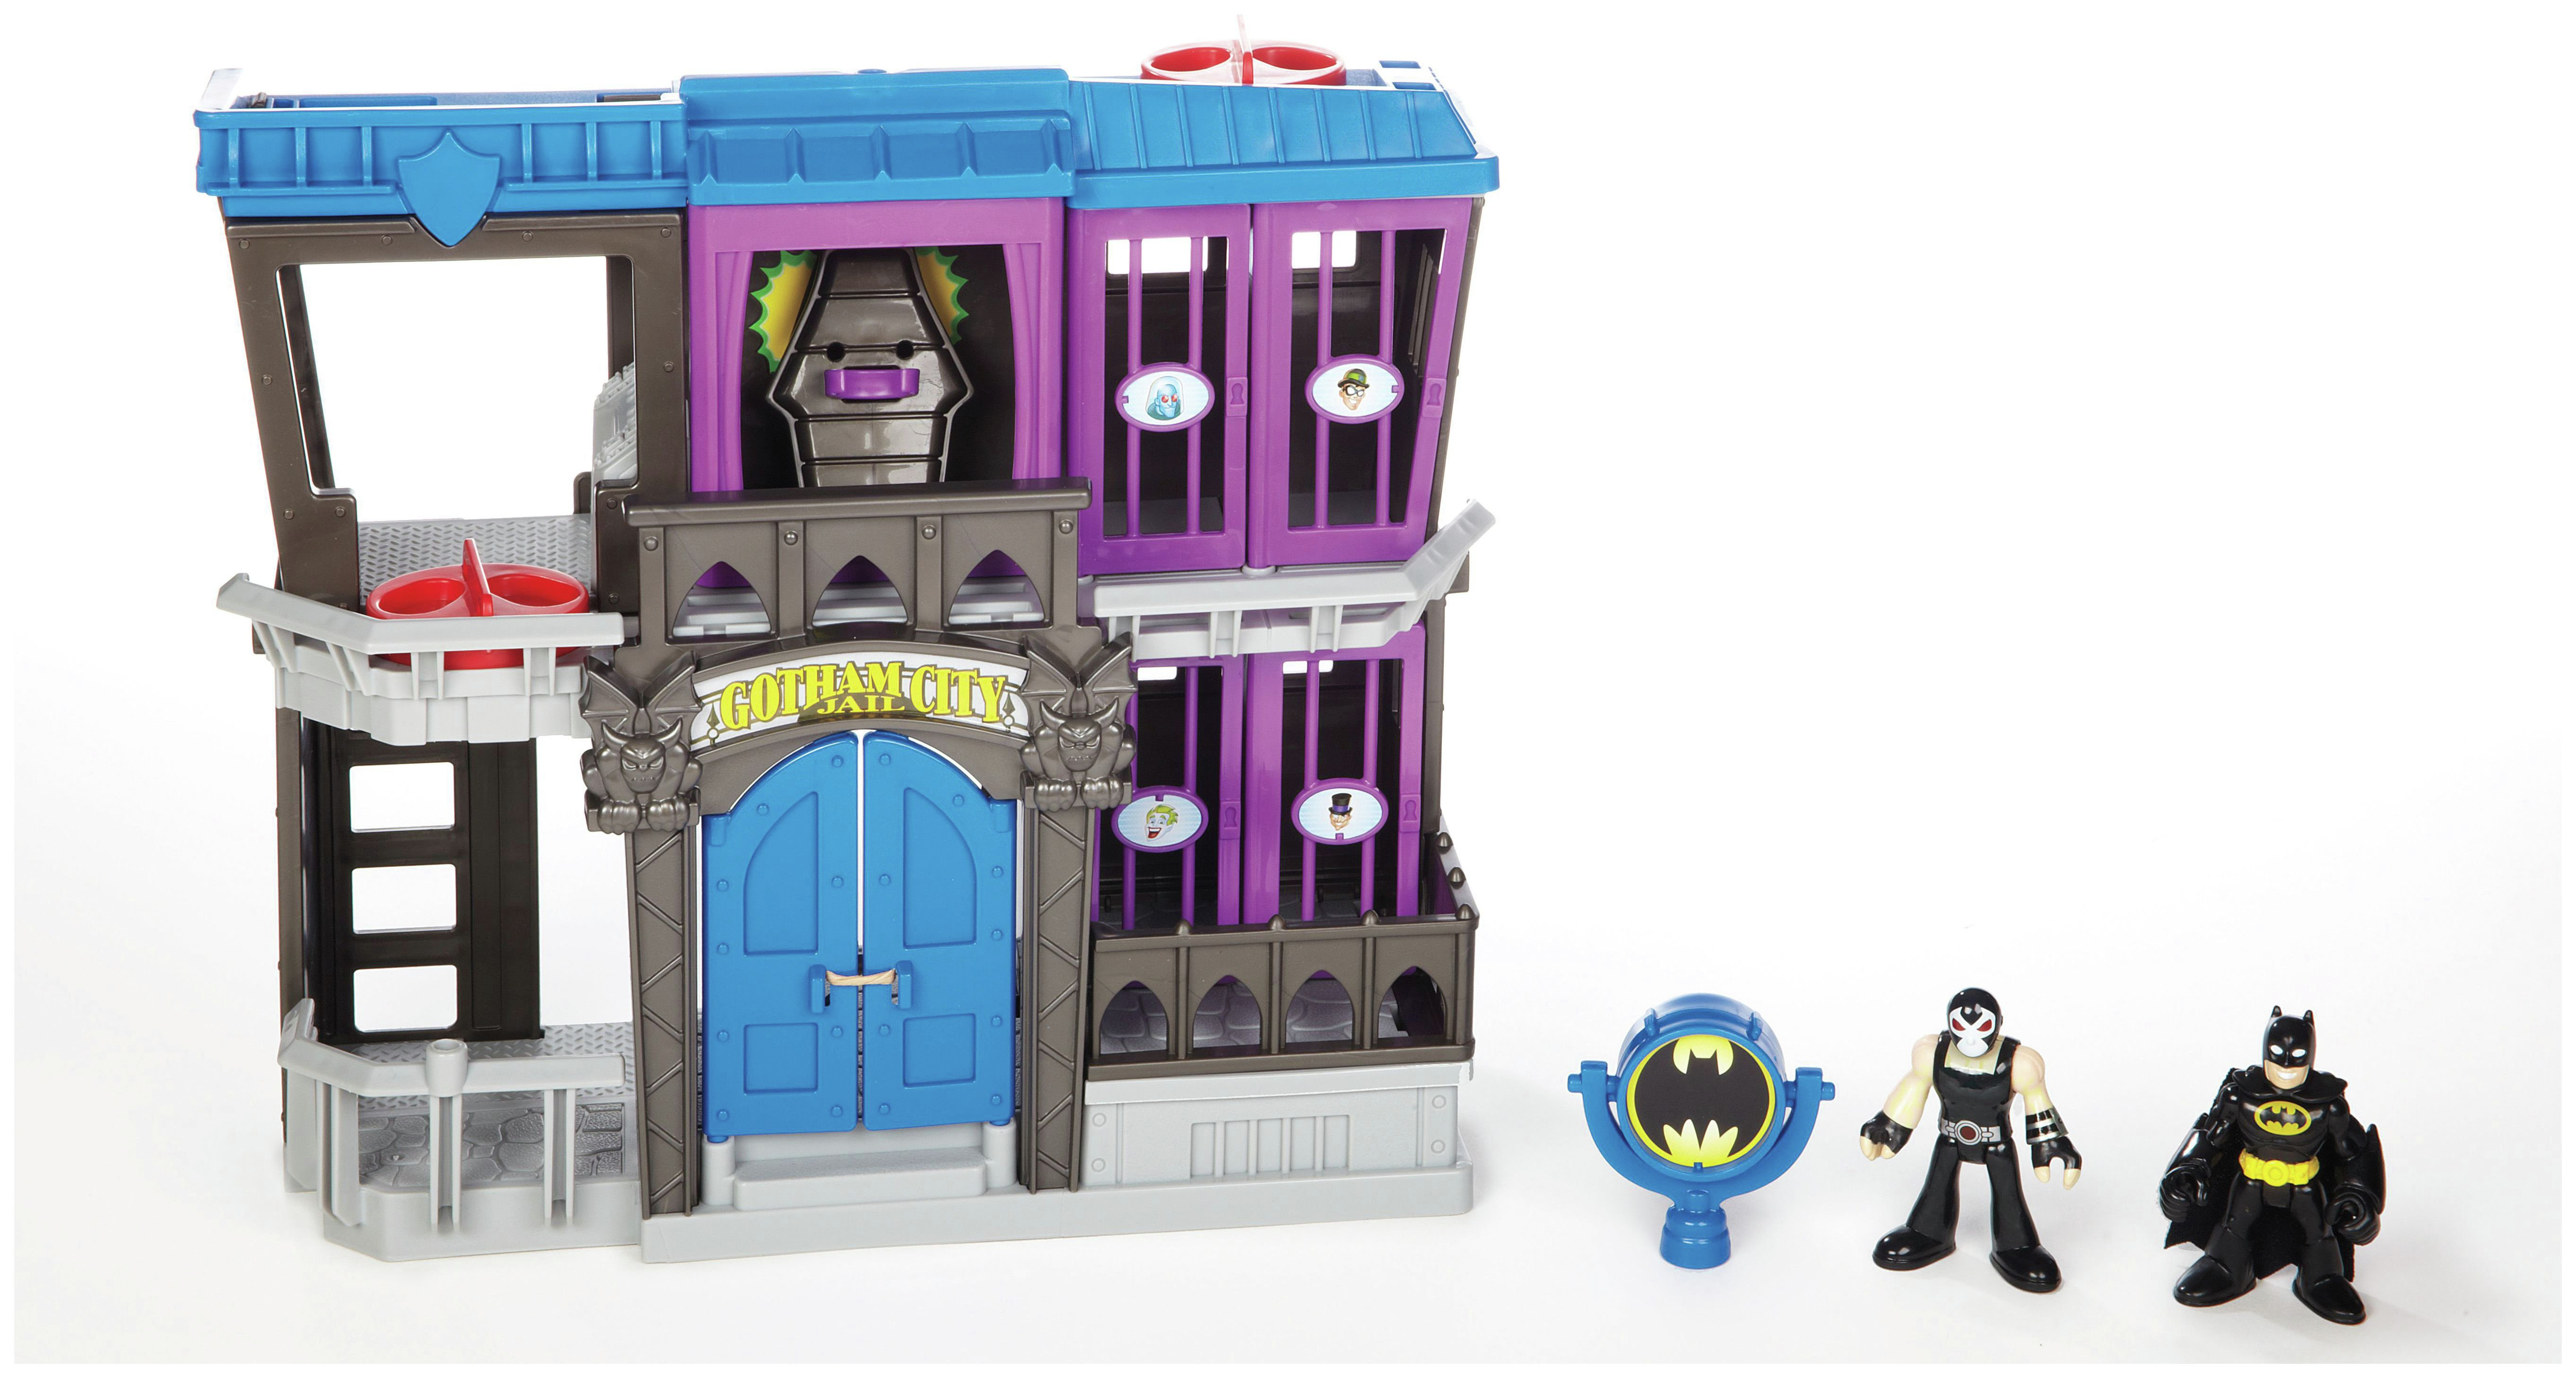 Fisher-Price - Imaginext DC Super friends - Gotham City Jail.